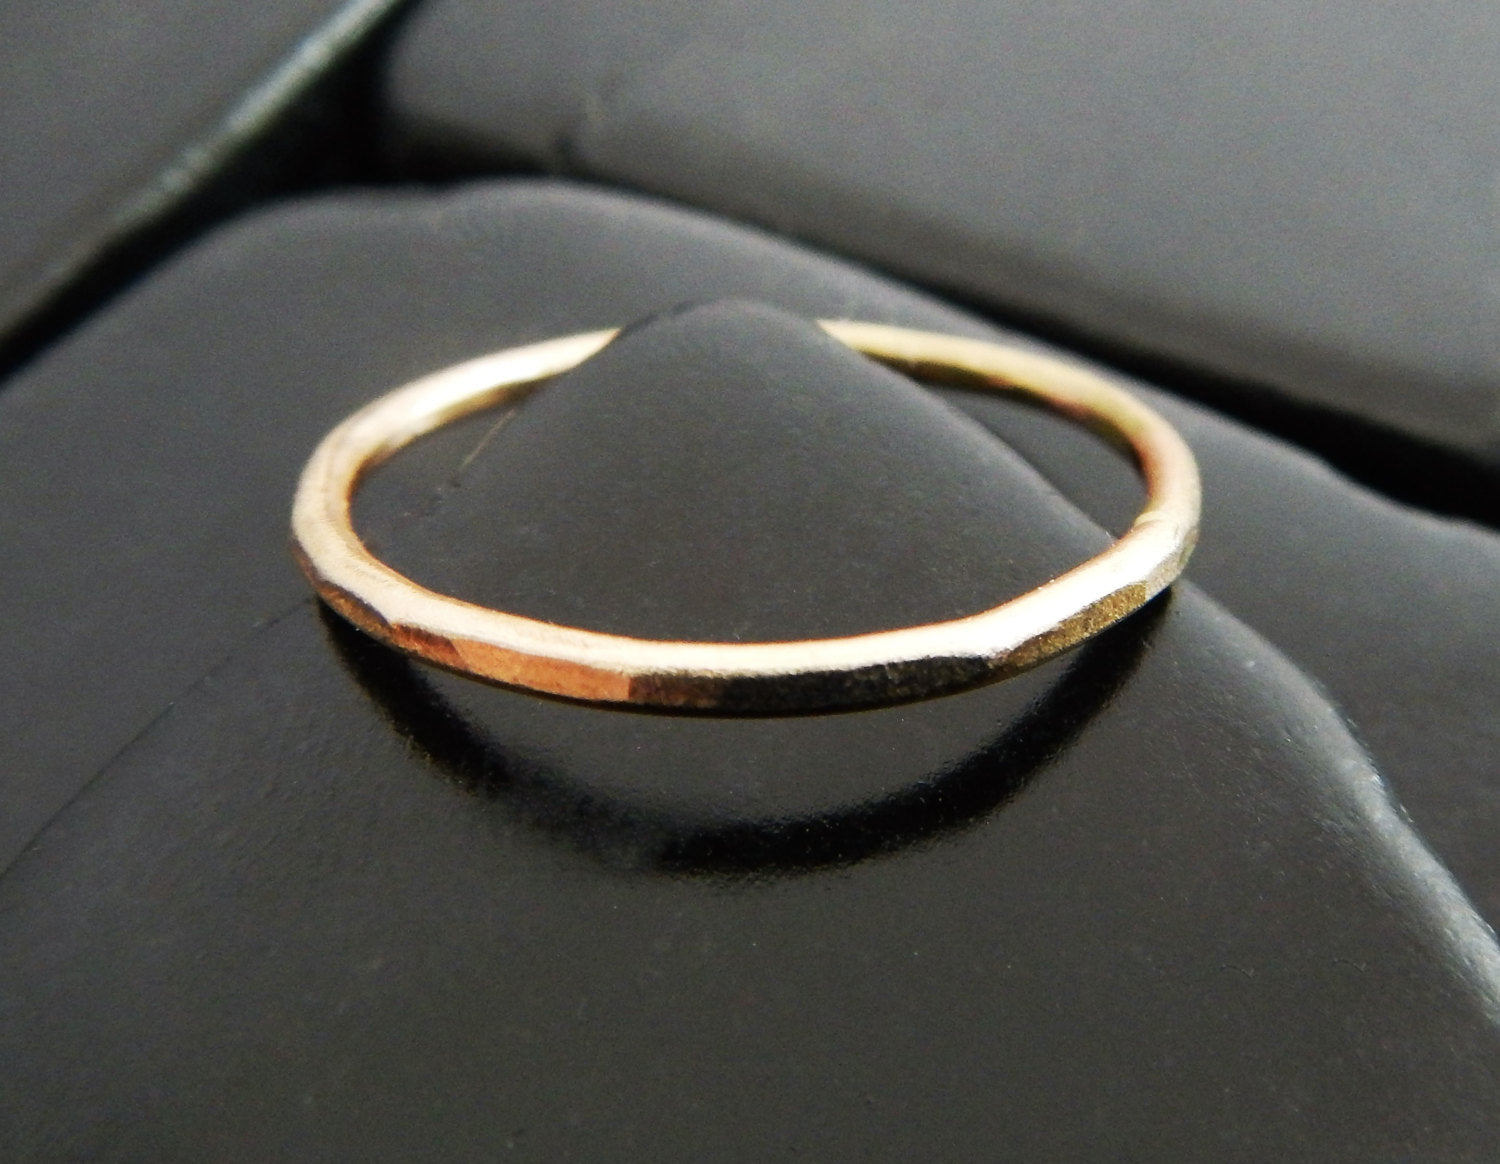 uni wedding gold rose simple cca k inspirational ring quick shopping bands band rings